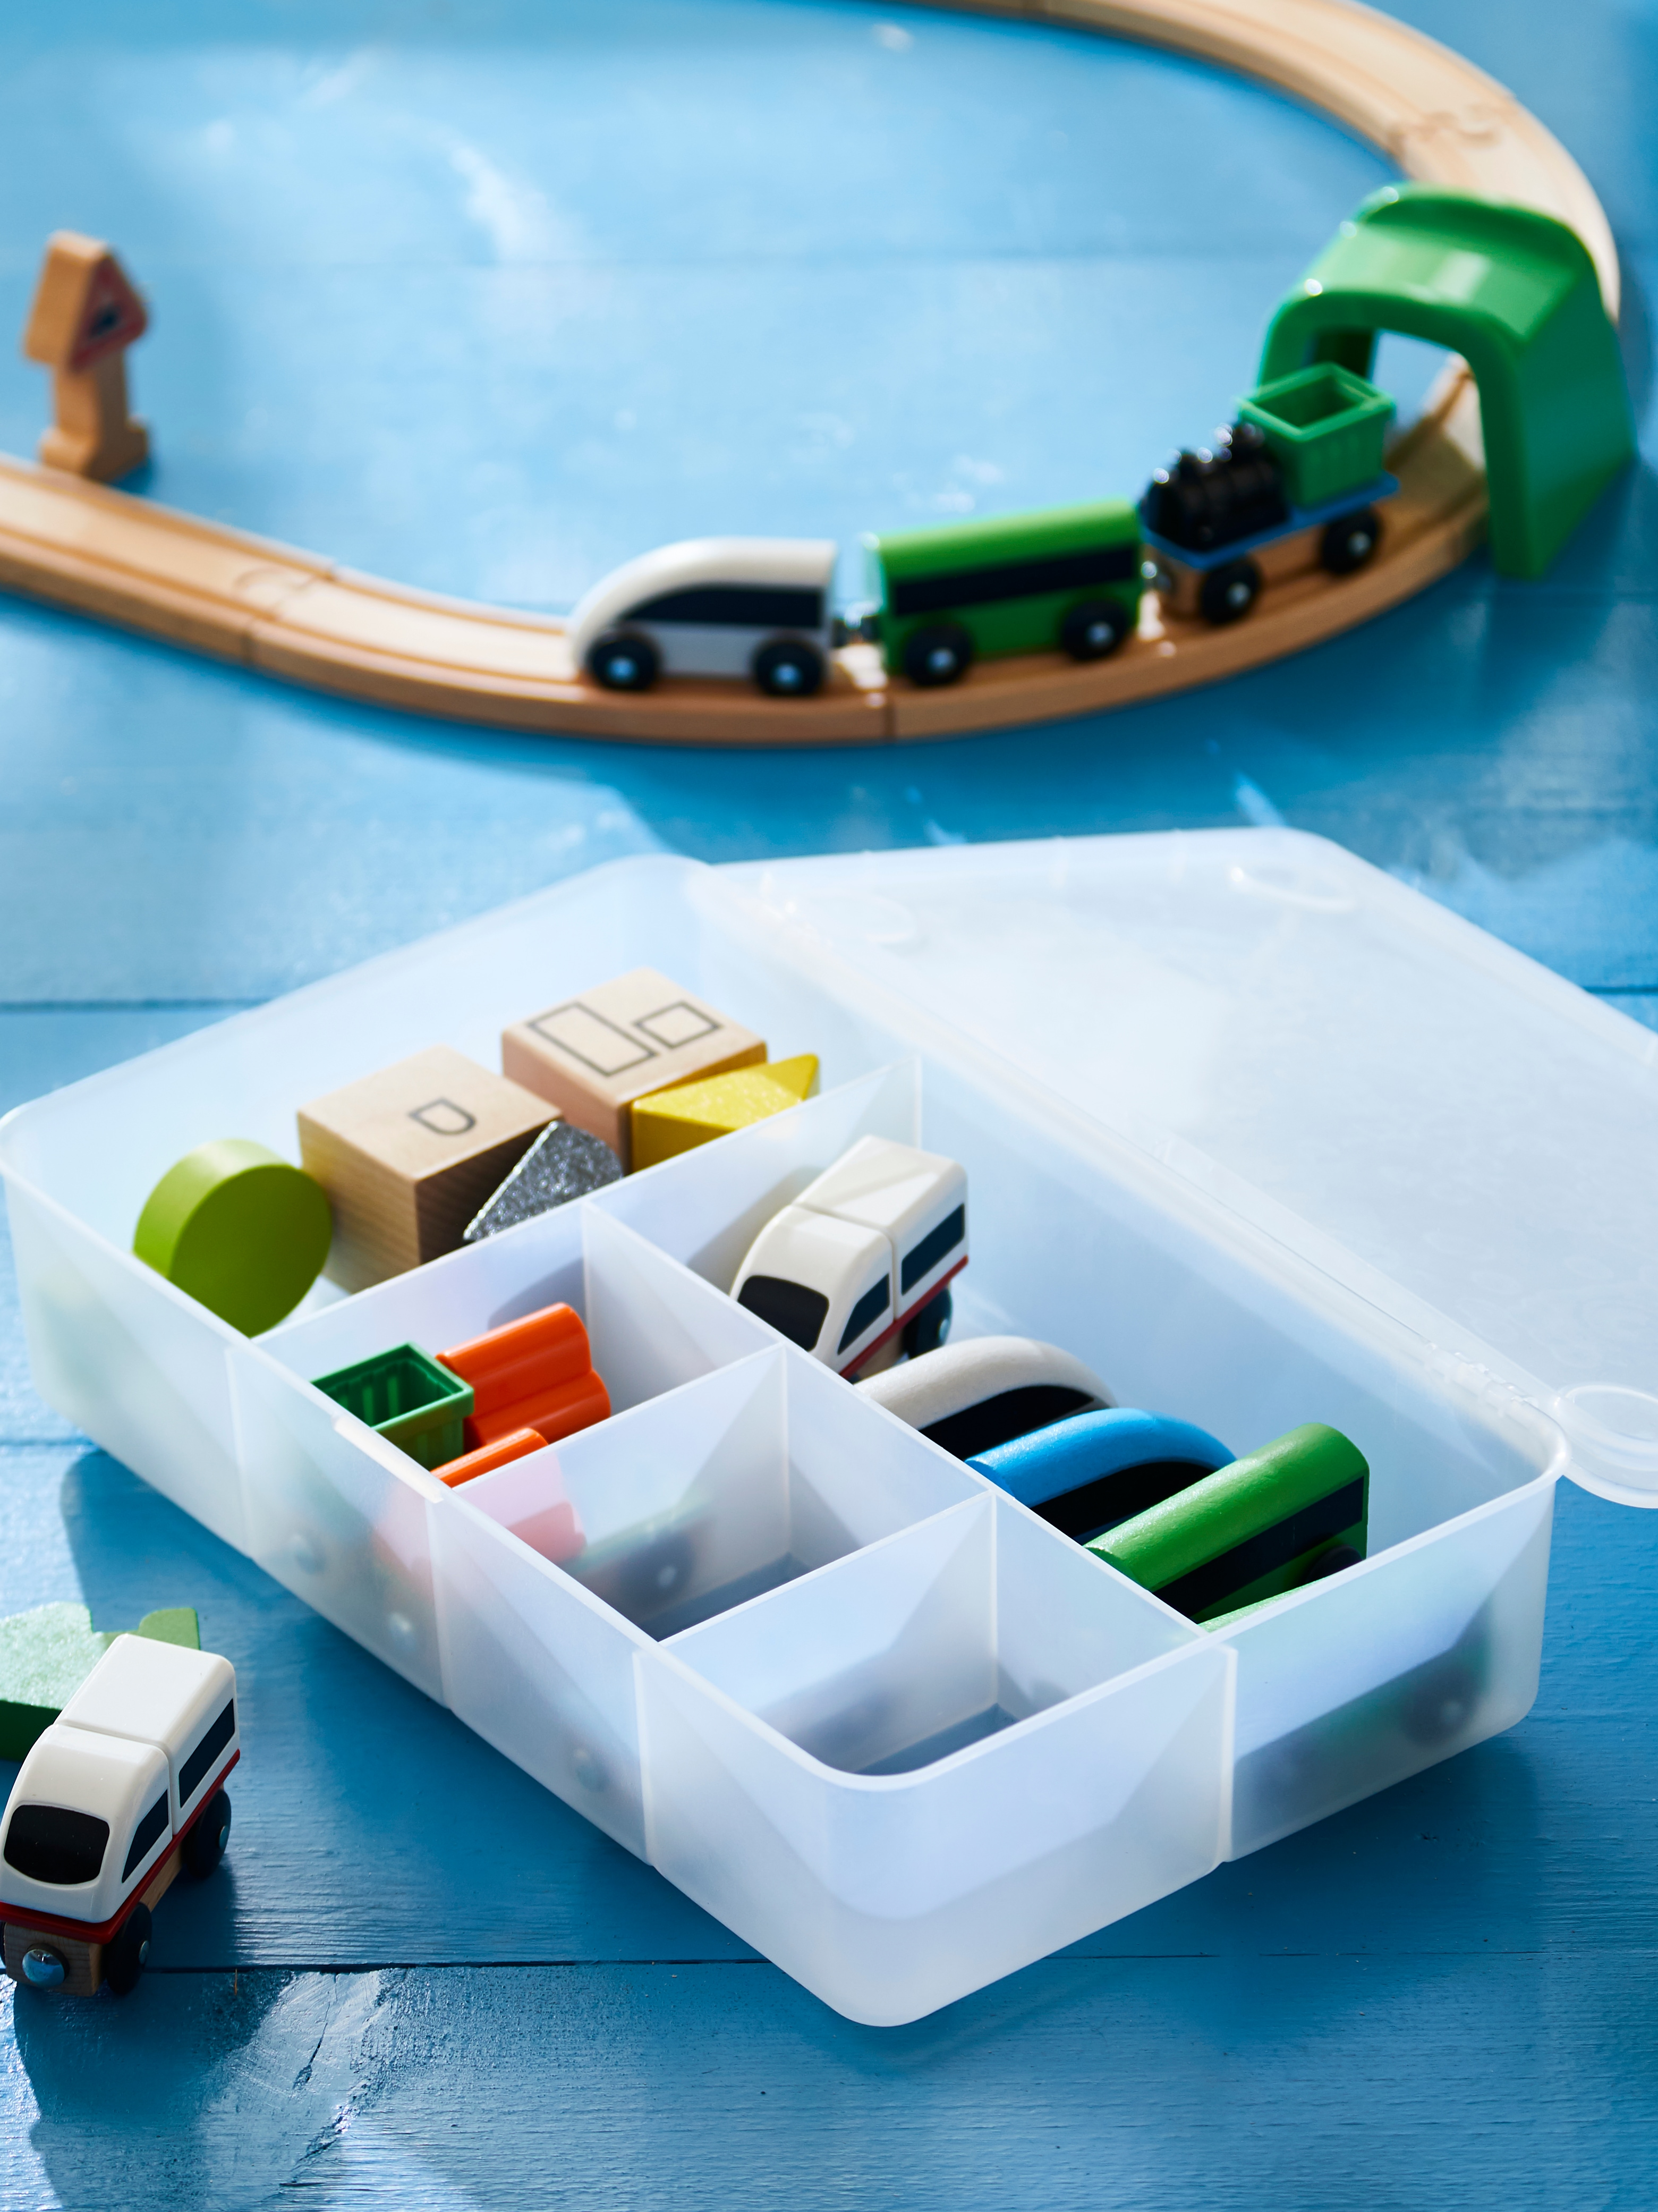 A LILLABO train set laid out on a blue floor with the pieces of the set organised in a GLIS transparent box.